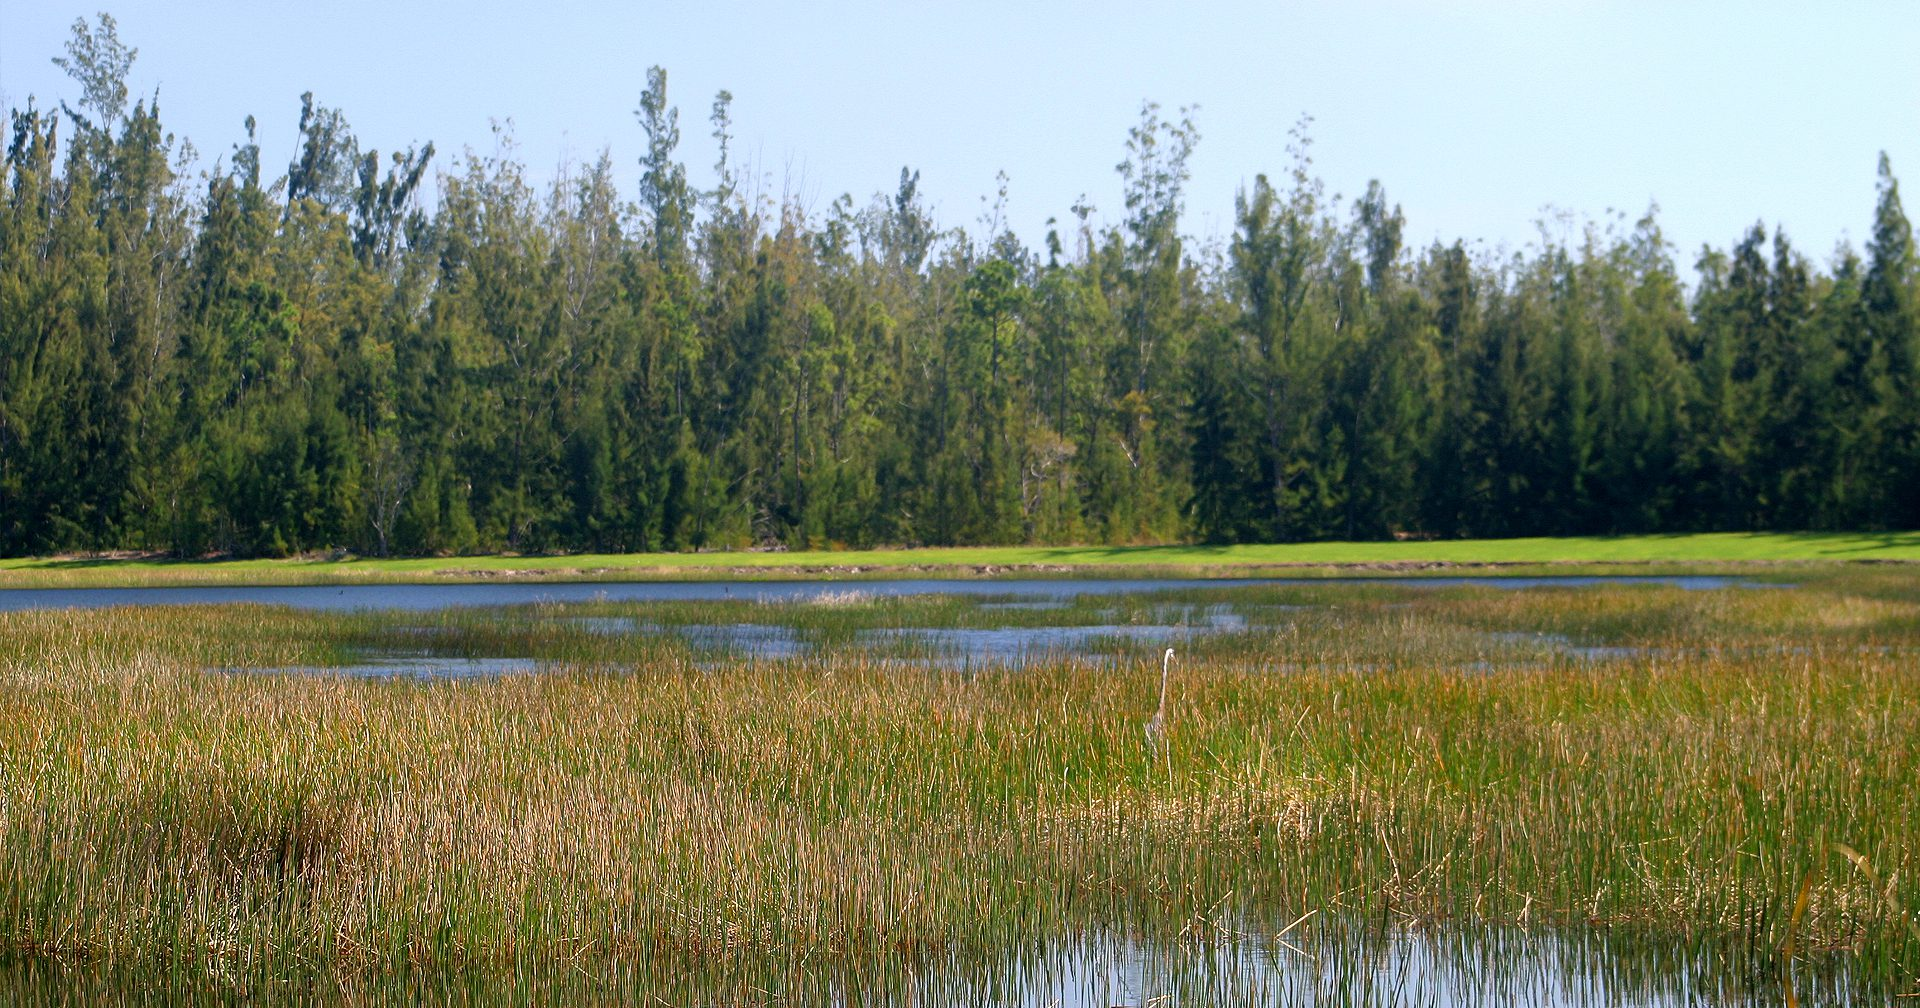 The King's Academy Wetland